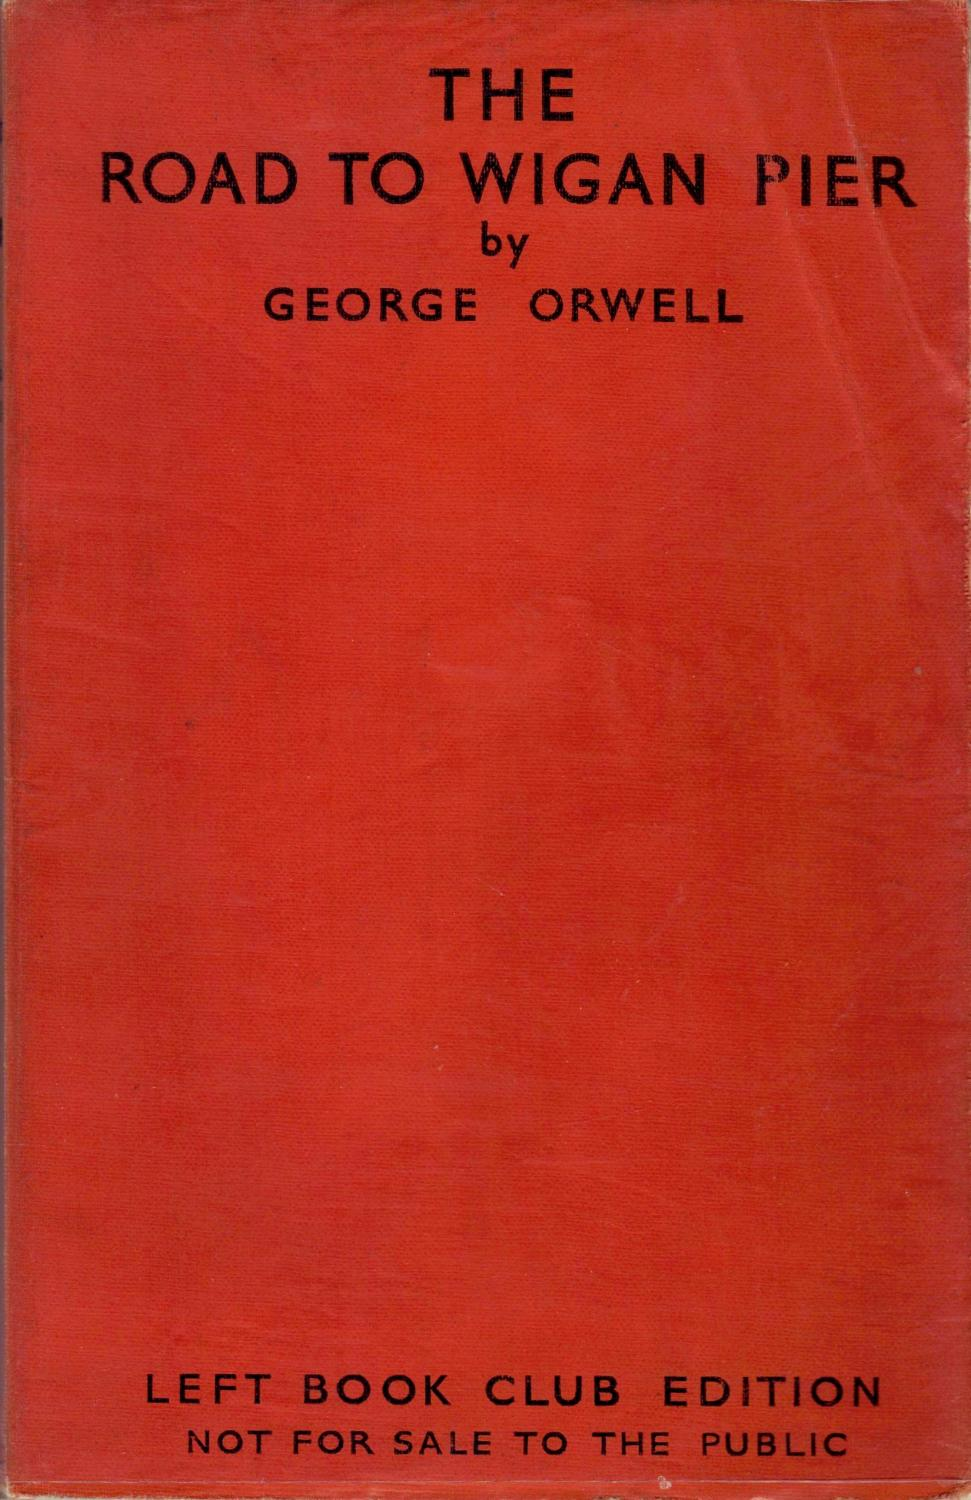 The Road to Wigan Pier - Orwell (Left Book Club/Victor Gollancz) (image)